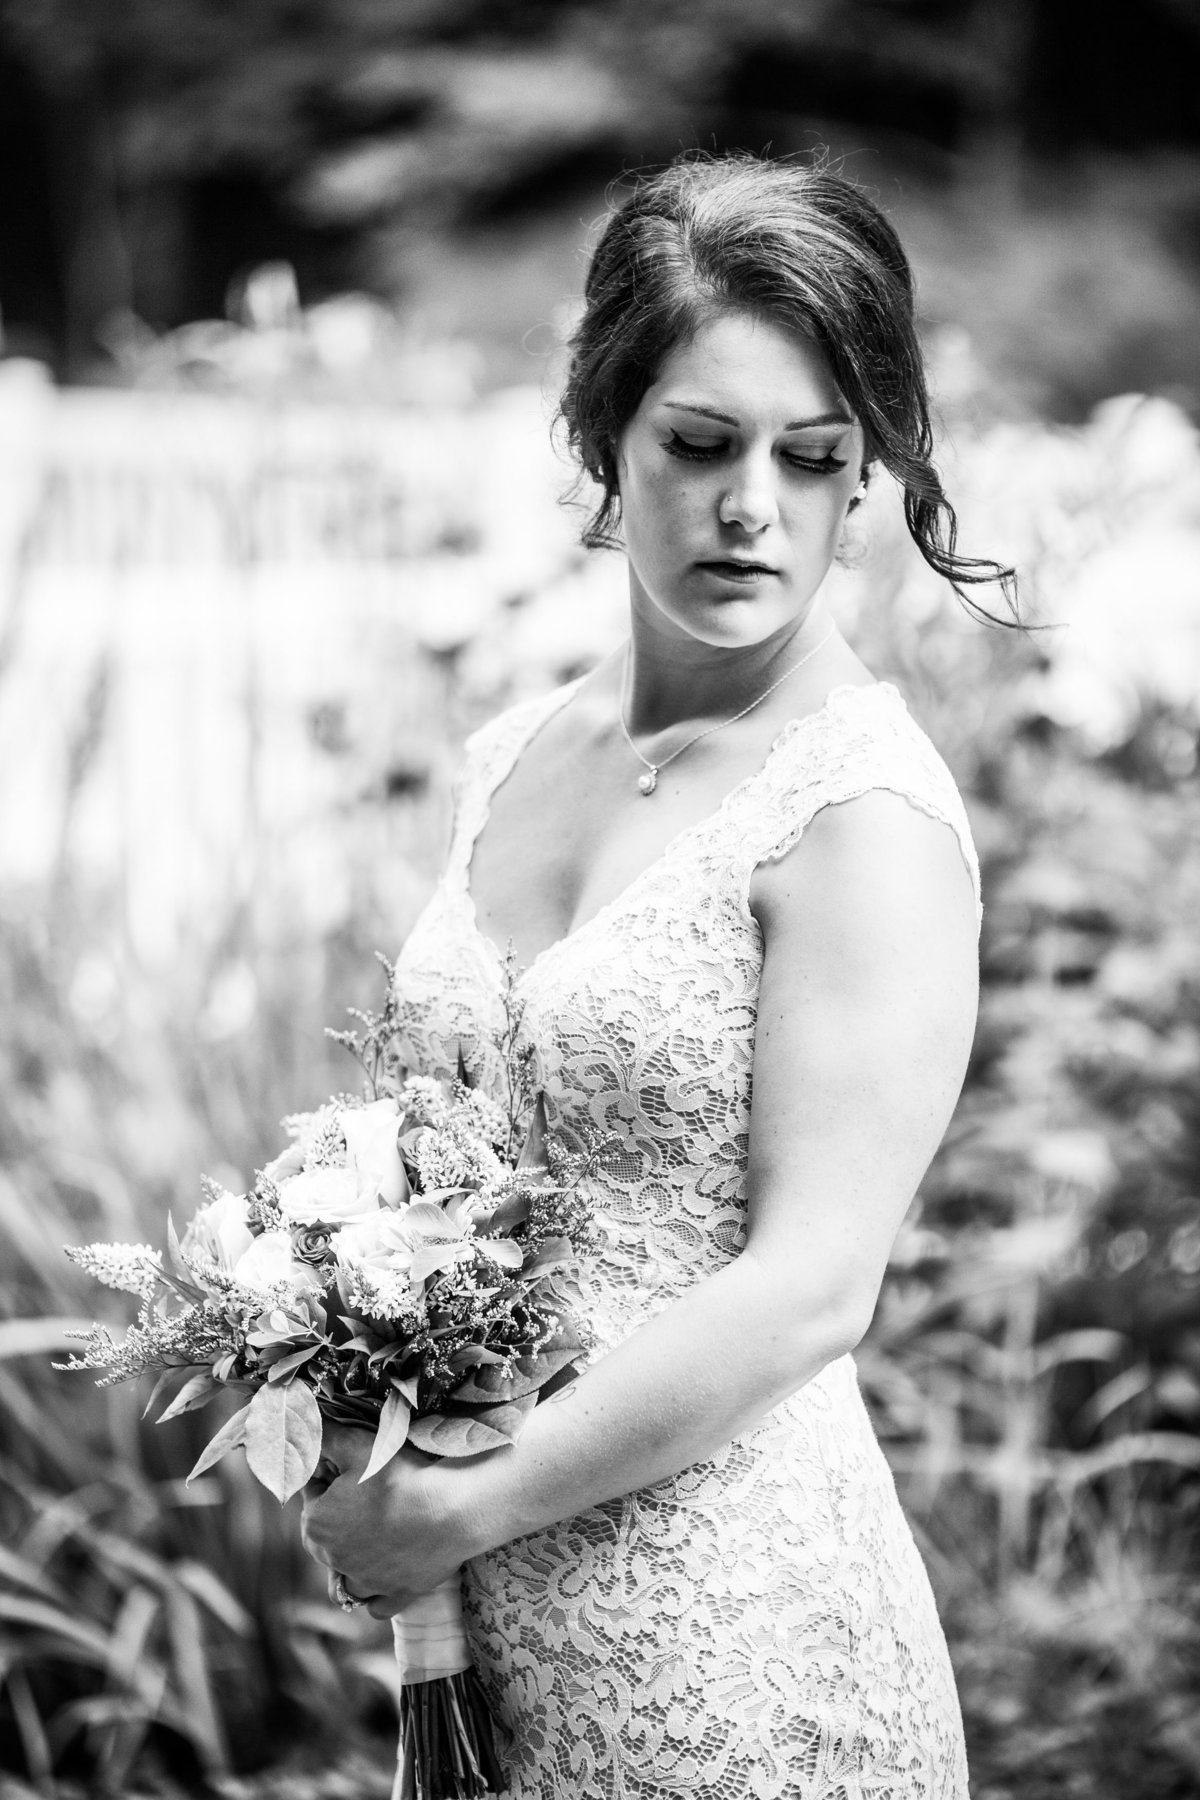 Hall-Potvin Photography Vermont Wedding Photographer Formals-24